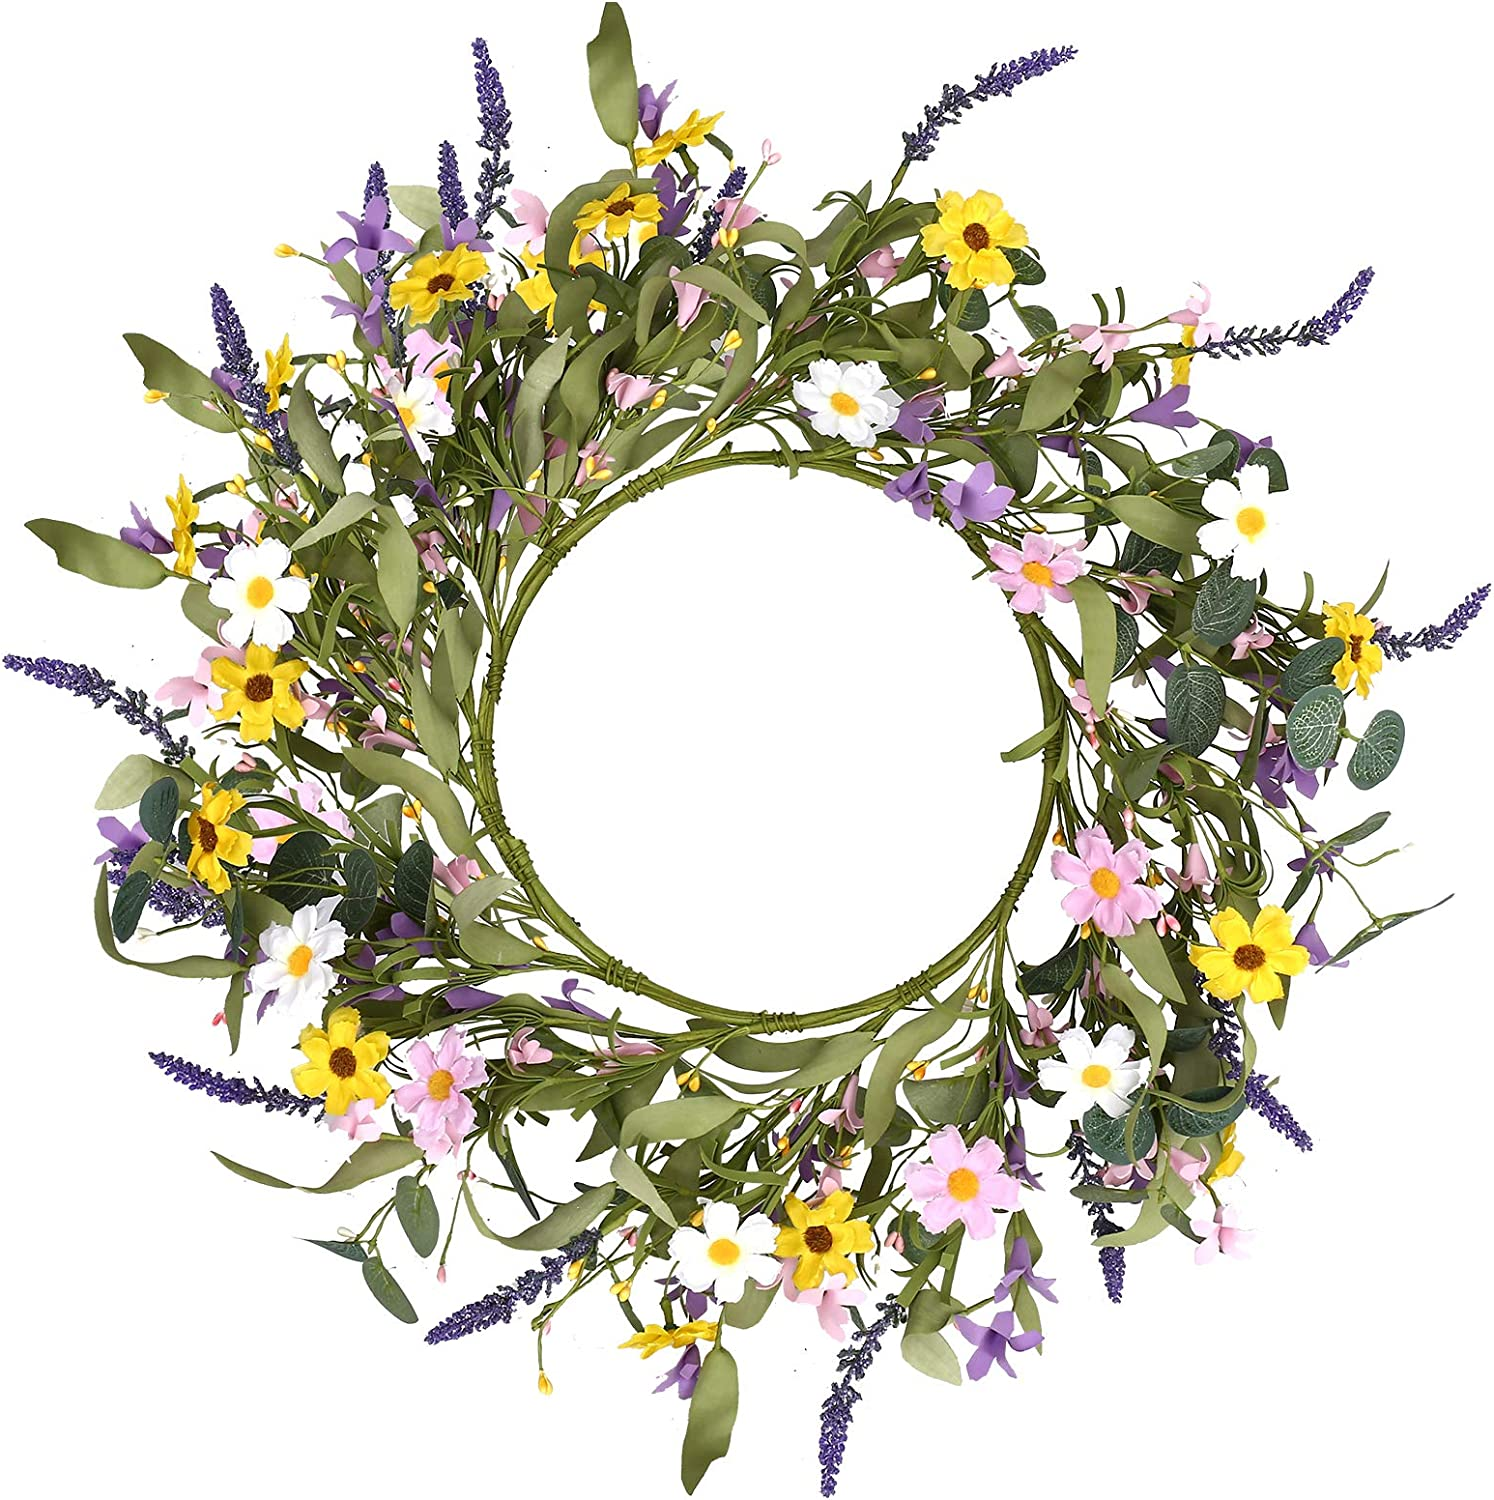 """Spring Flower Wreath,20"""" Artificial Floral Wreath Summer Daisy Lavender Wreath with Green Eucalyptus Leaves for Front Door Wall Window and Home Decor"""